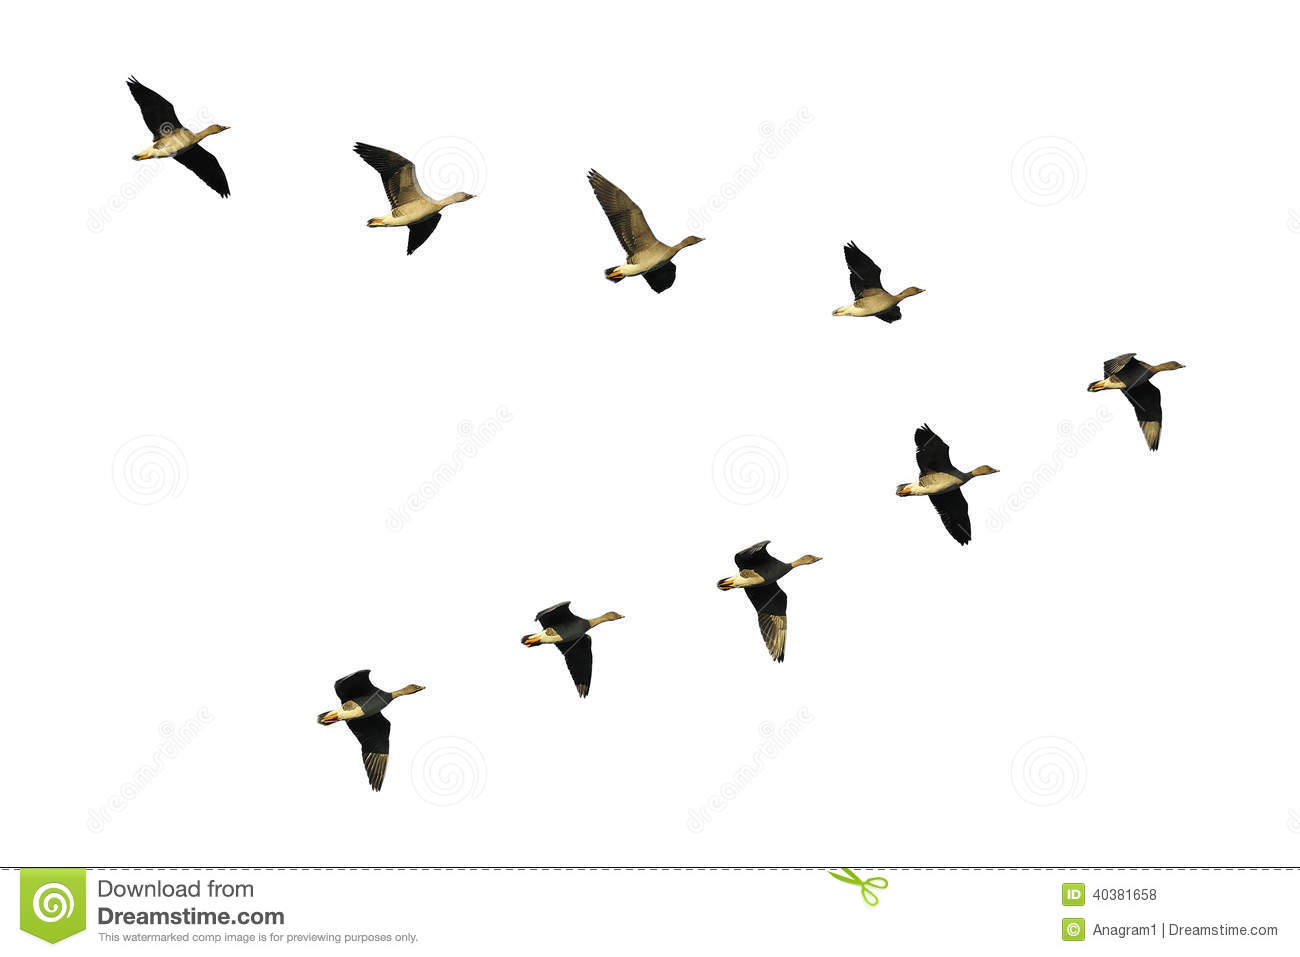 Geese Migration clipart #17, Download drawings